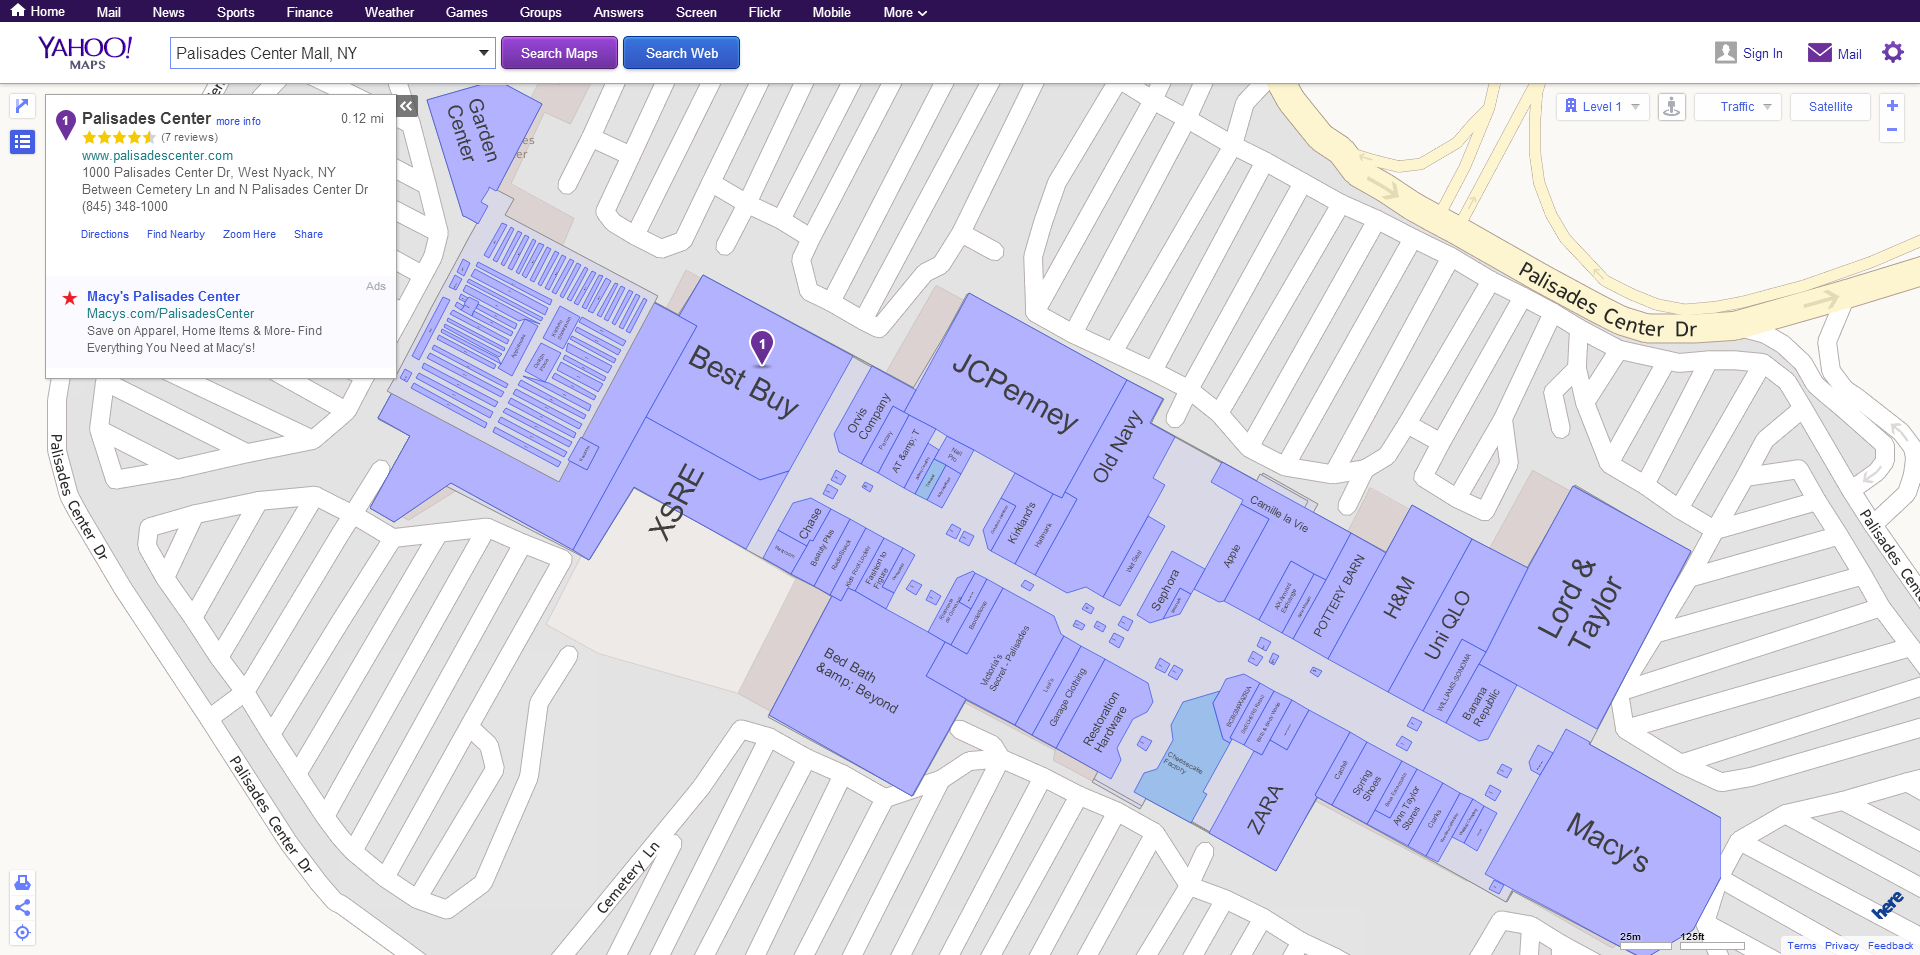 will you be using yahoo maps indoors. yahoo maps goes indoors